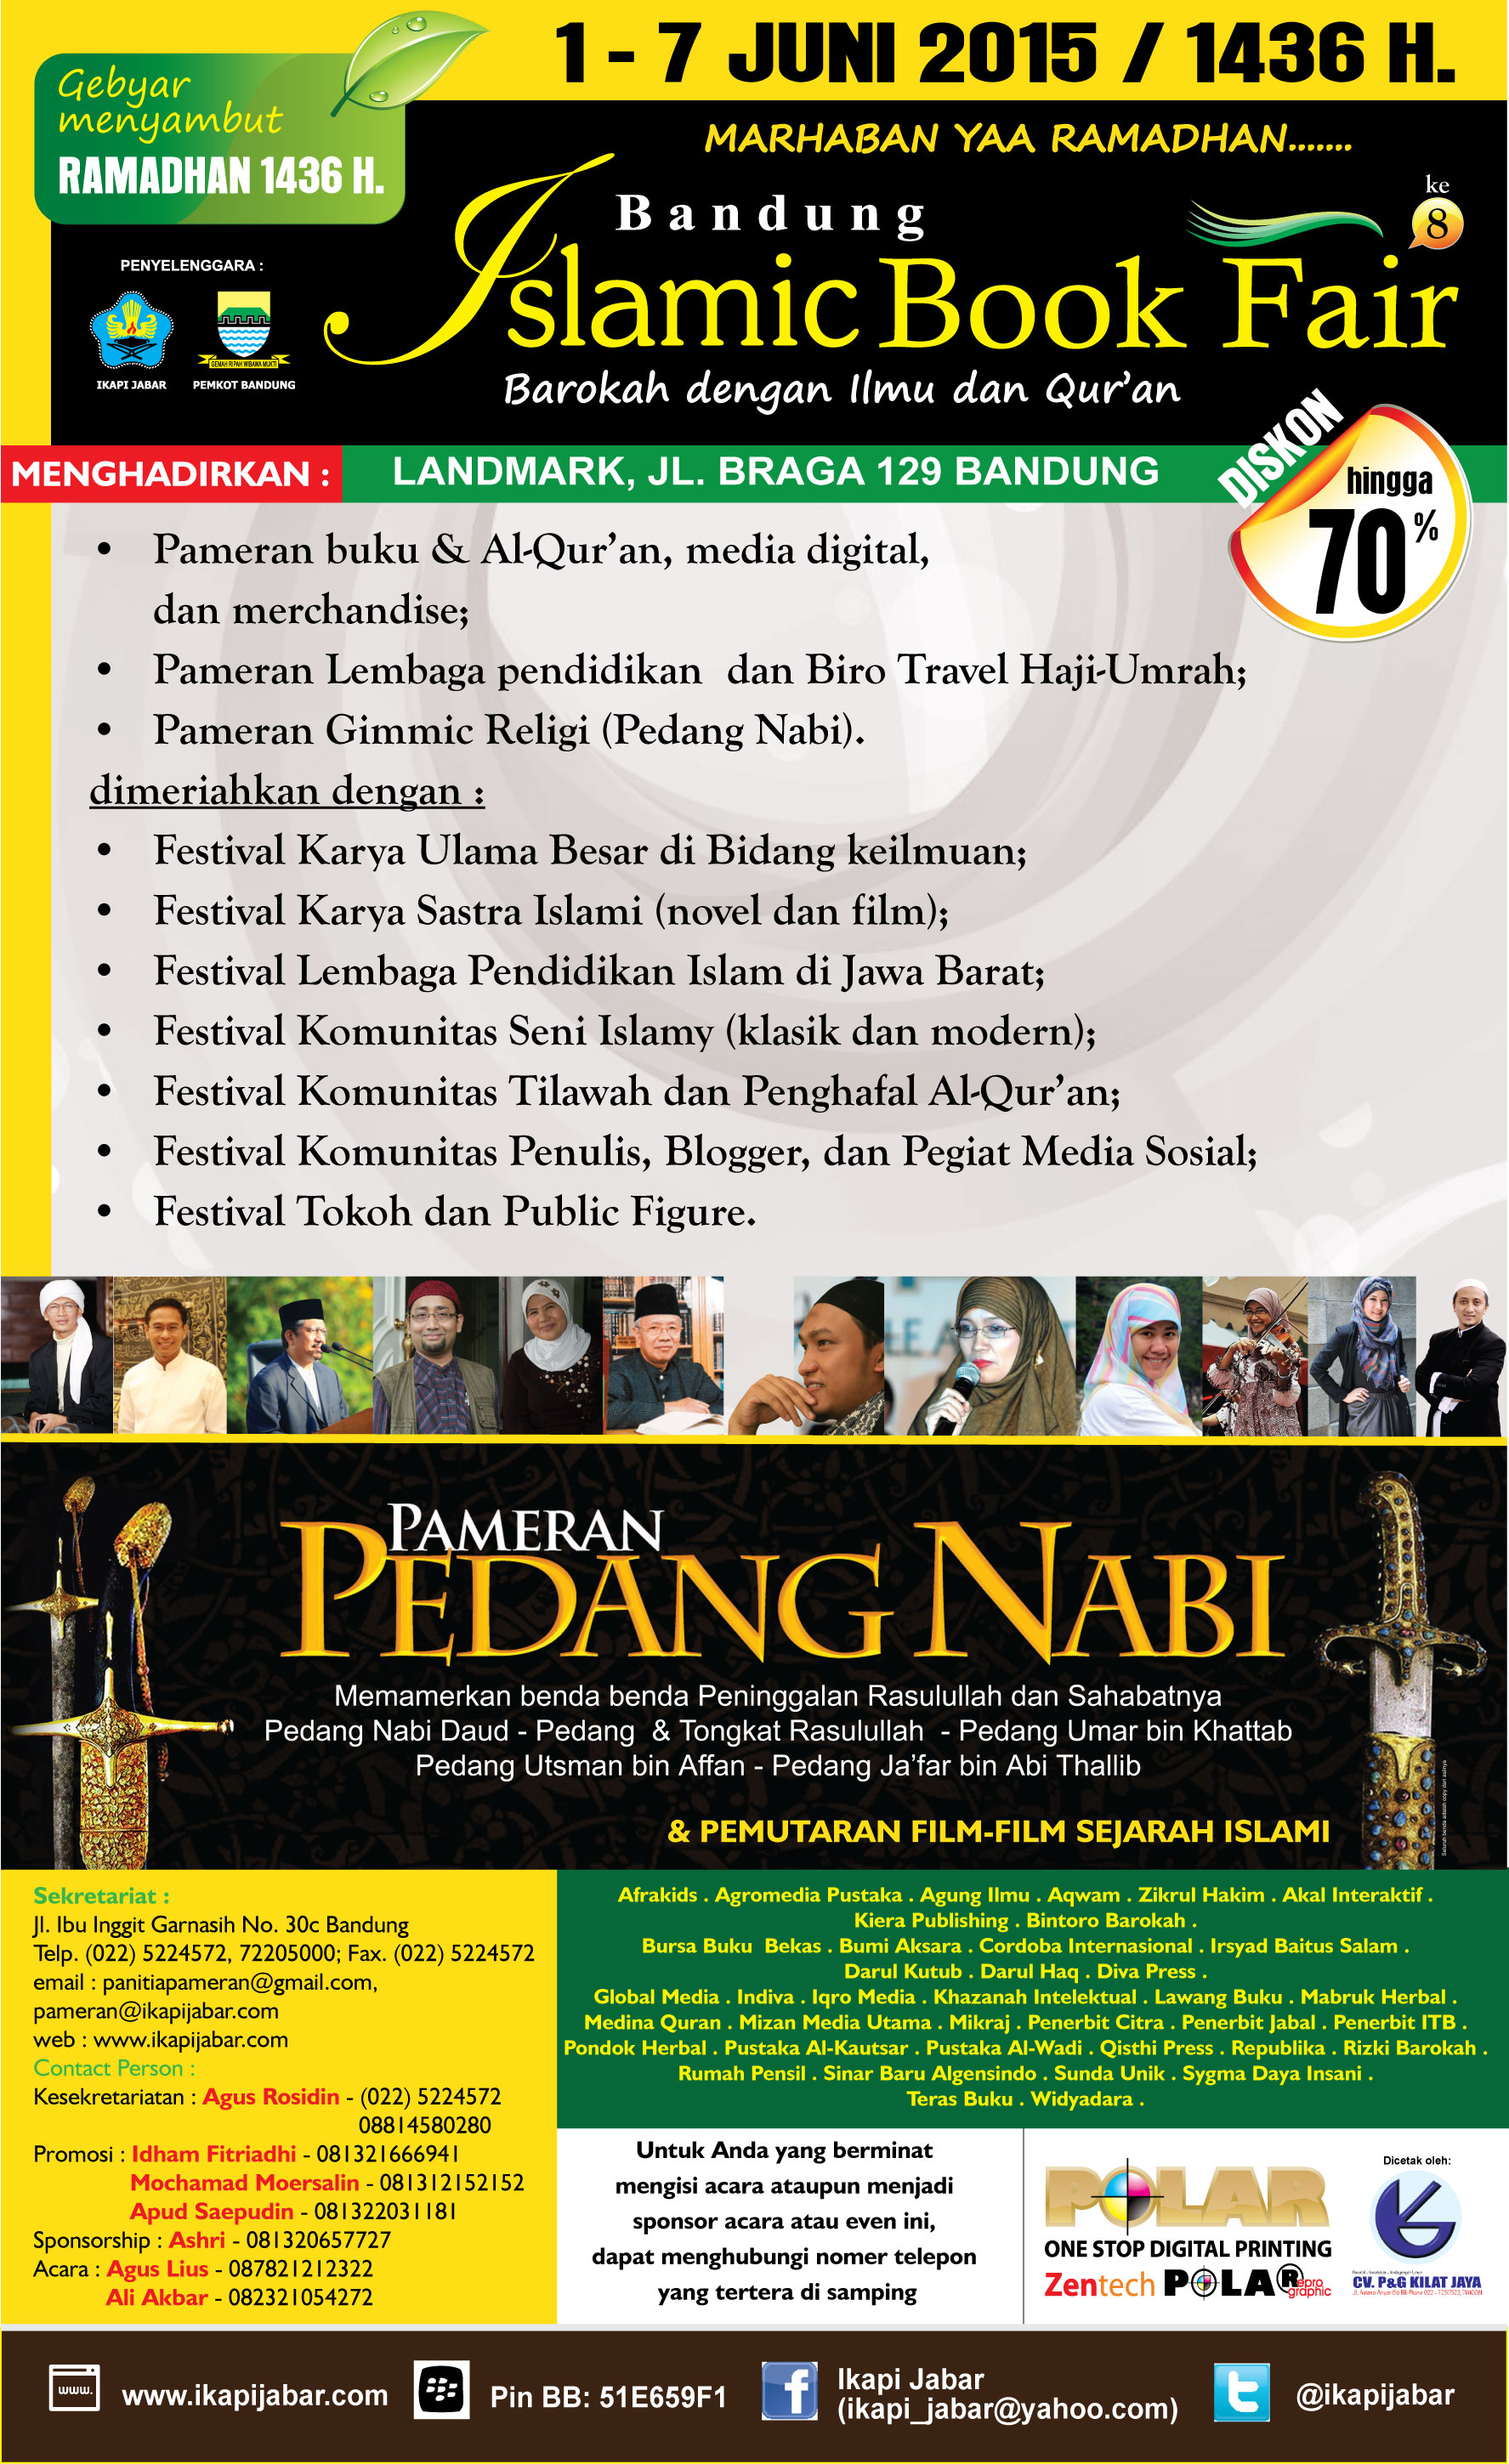 Bandung Islamic Book Fair 2015 171 Informasi Pameran Event